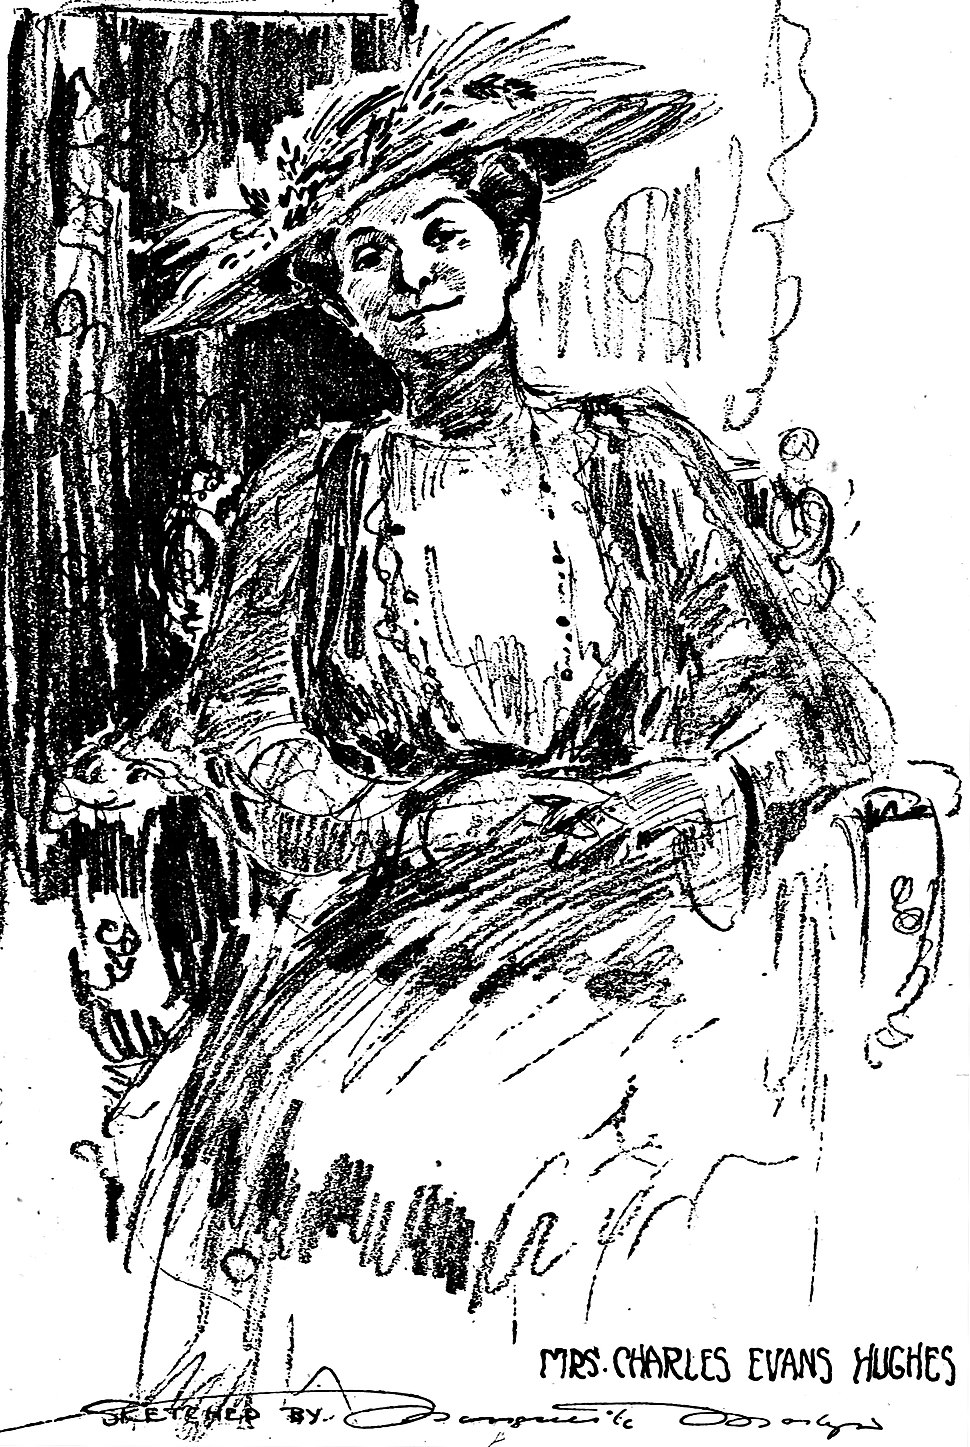 Mrs. Charles Evans Hughes as sketched by Marguerite Martyn, 1916